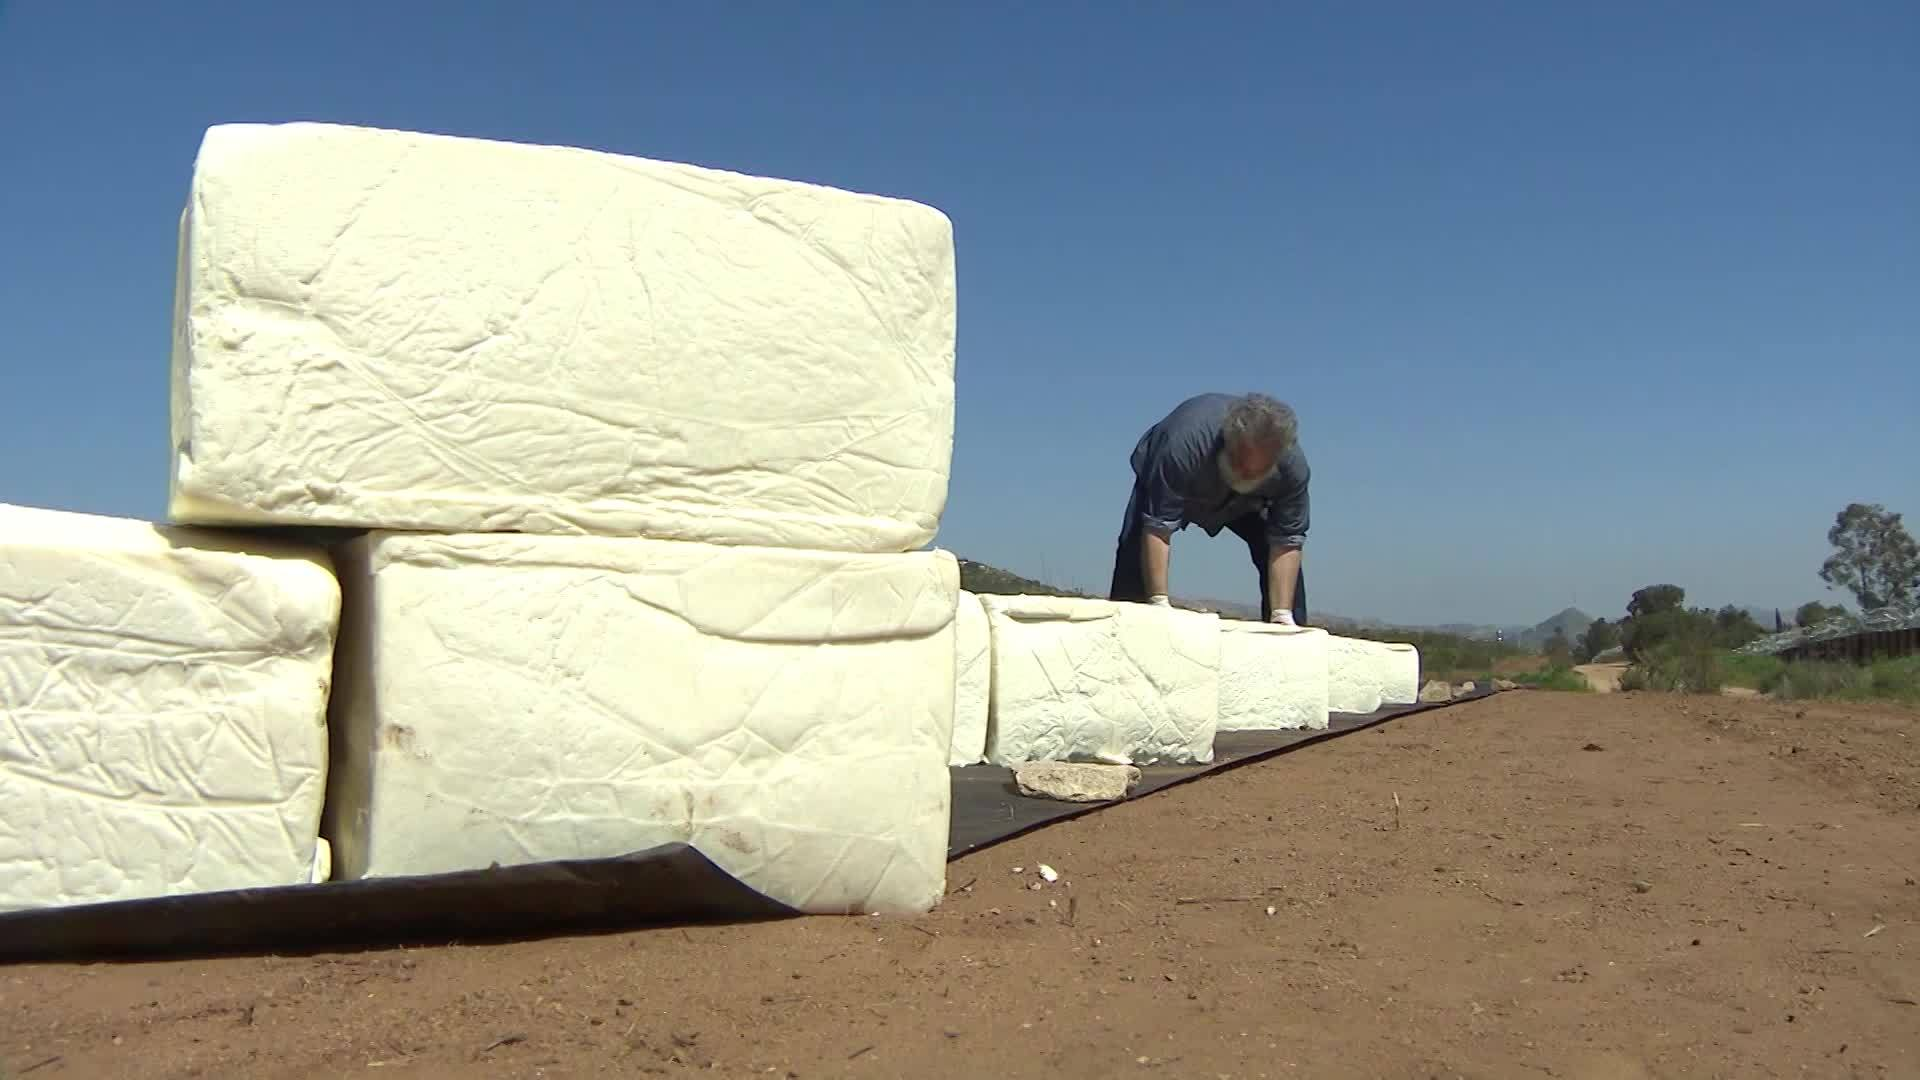 VIDEO: Artist building giant cheese wall along US-Mexico border